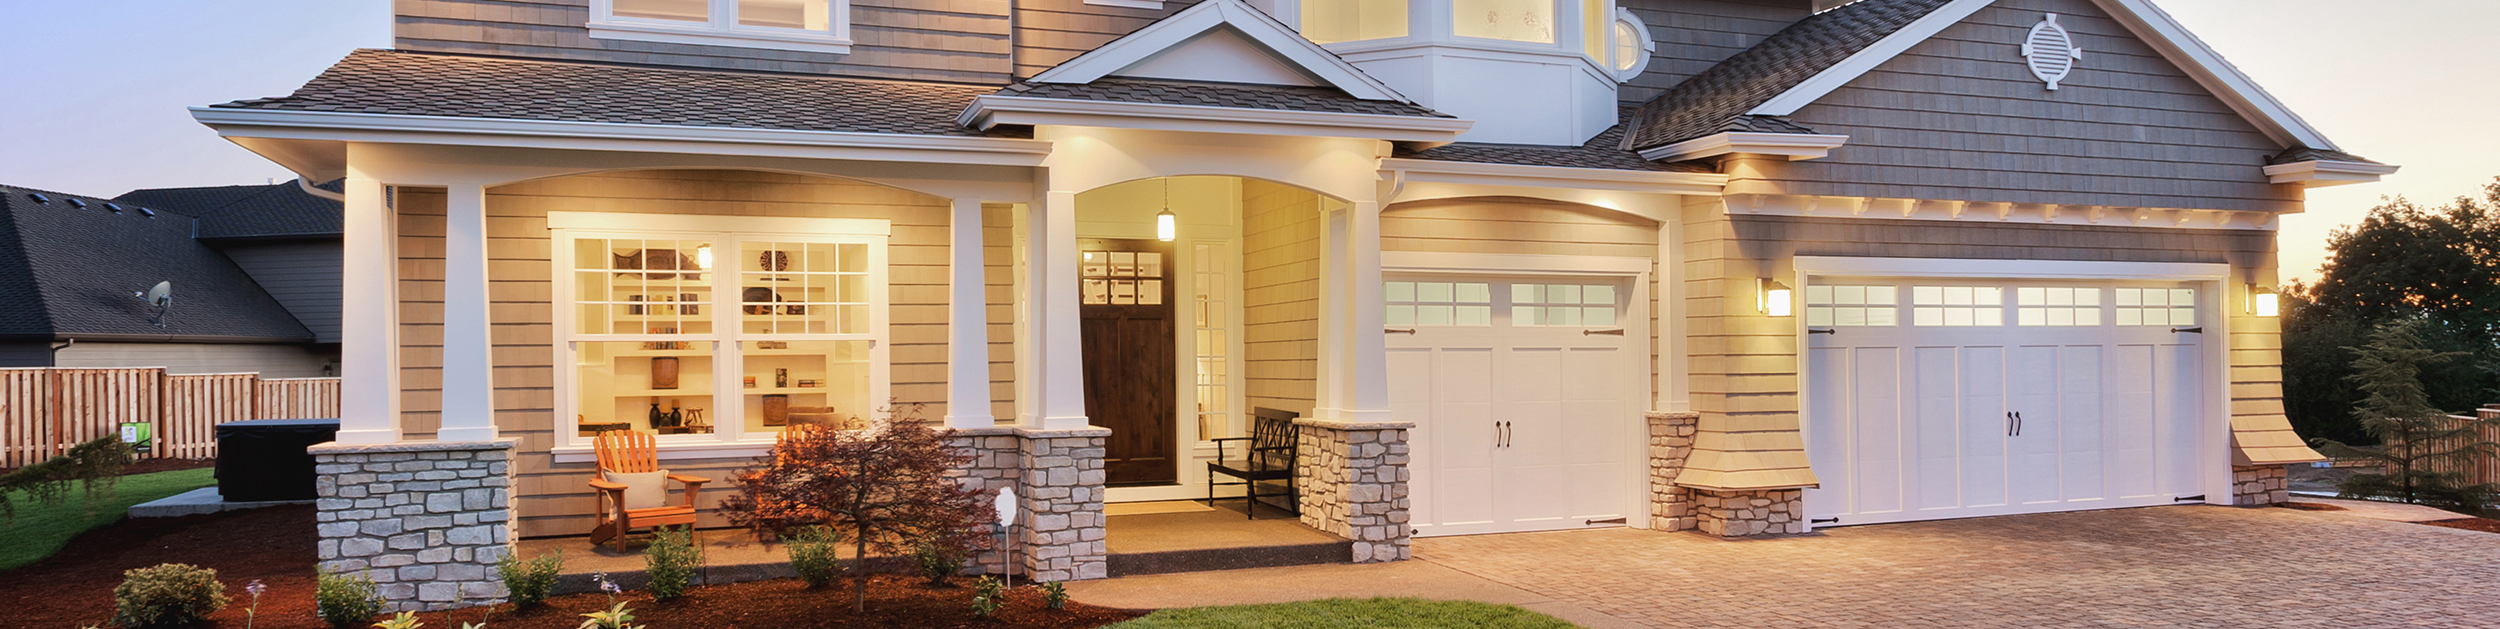 exterior of beautifully lit up home with a stone driveway - gray shingles with white trim and garage doors, stonework and pillars supporting the overhang with two adirondack chairs and a bench on the front porch